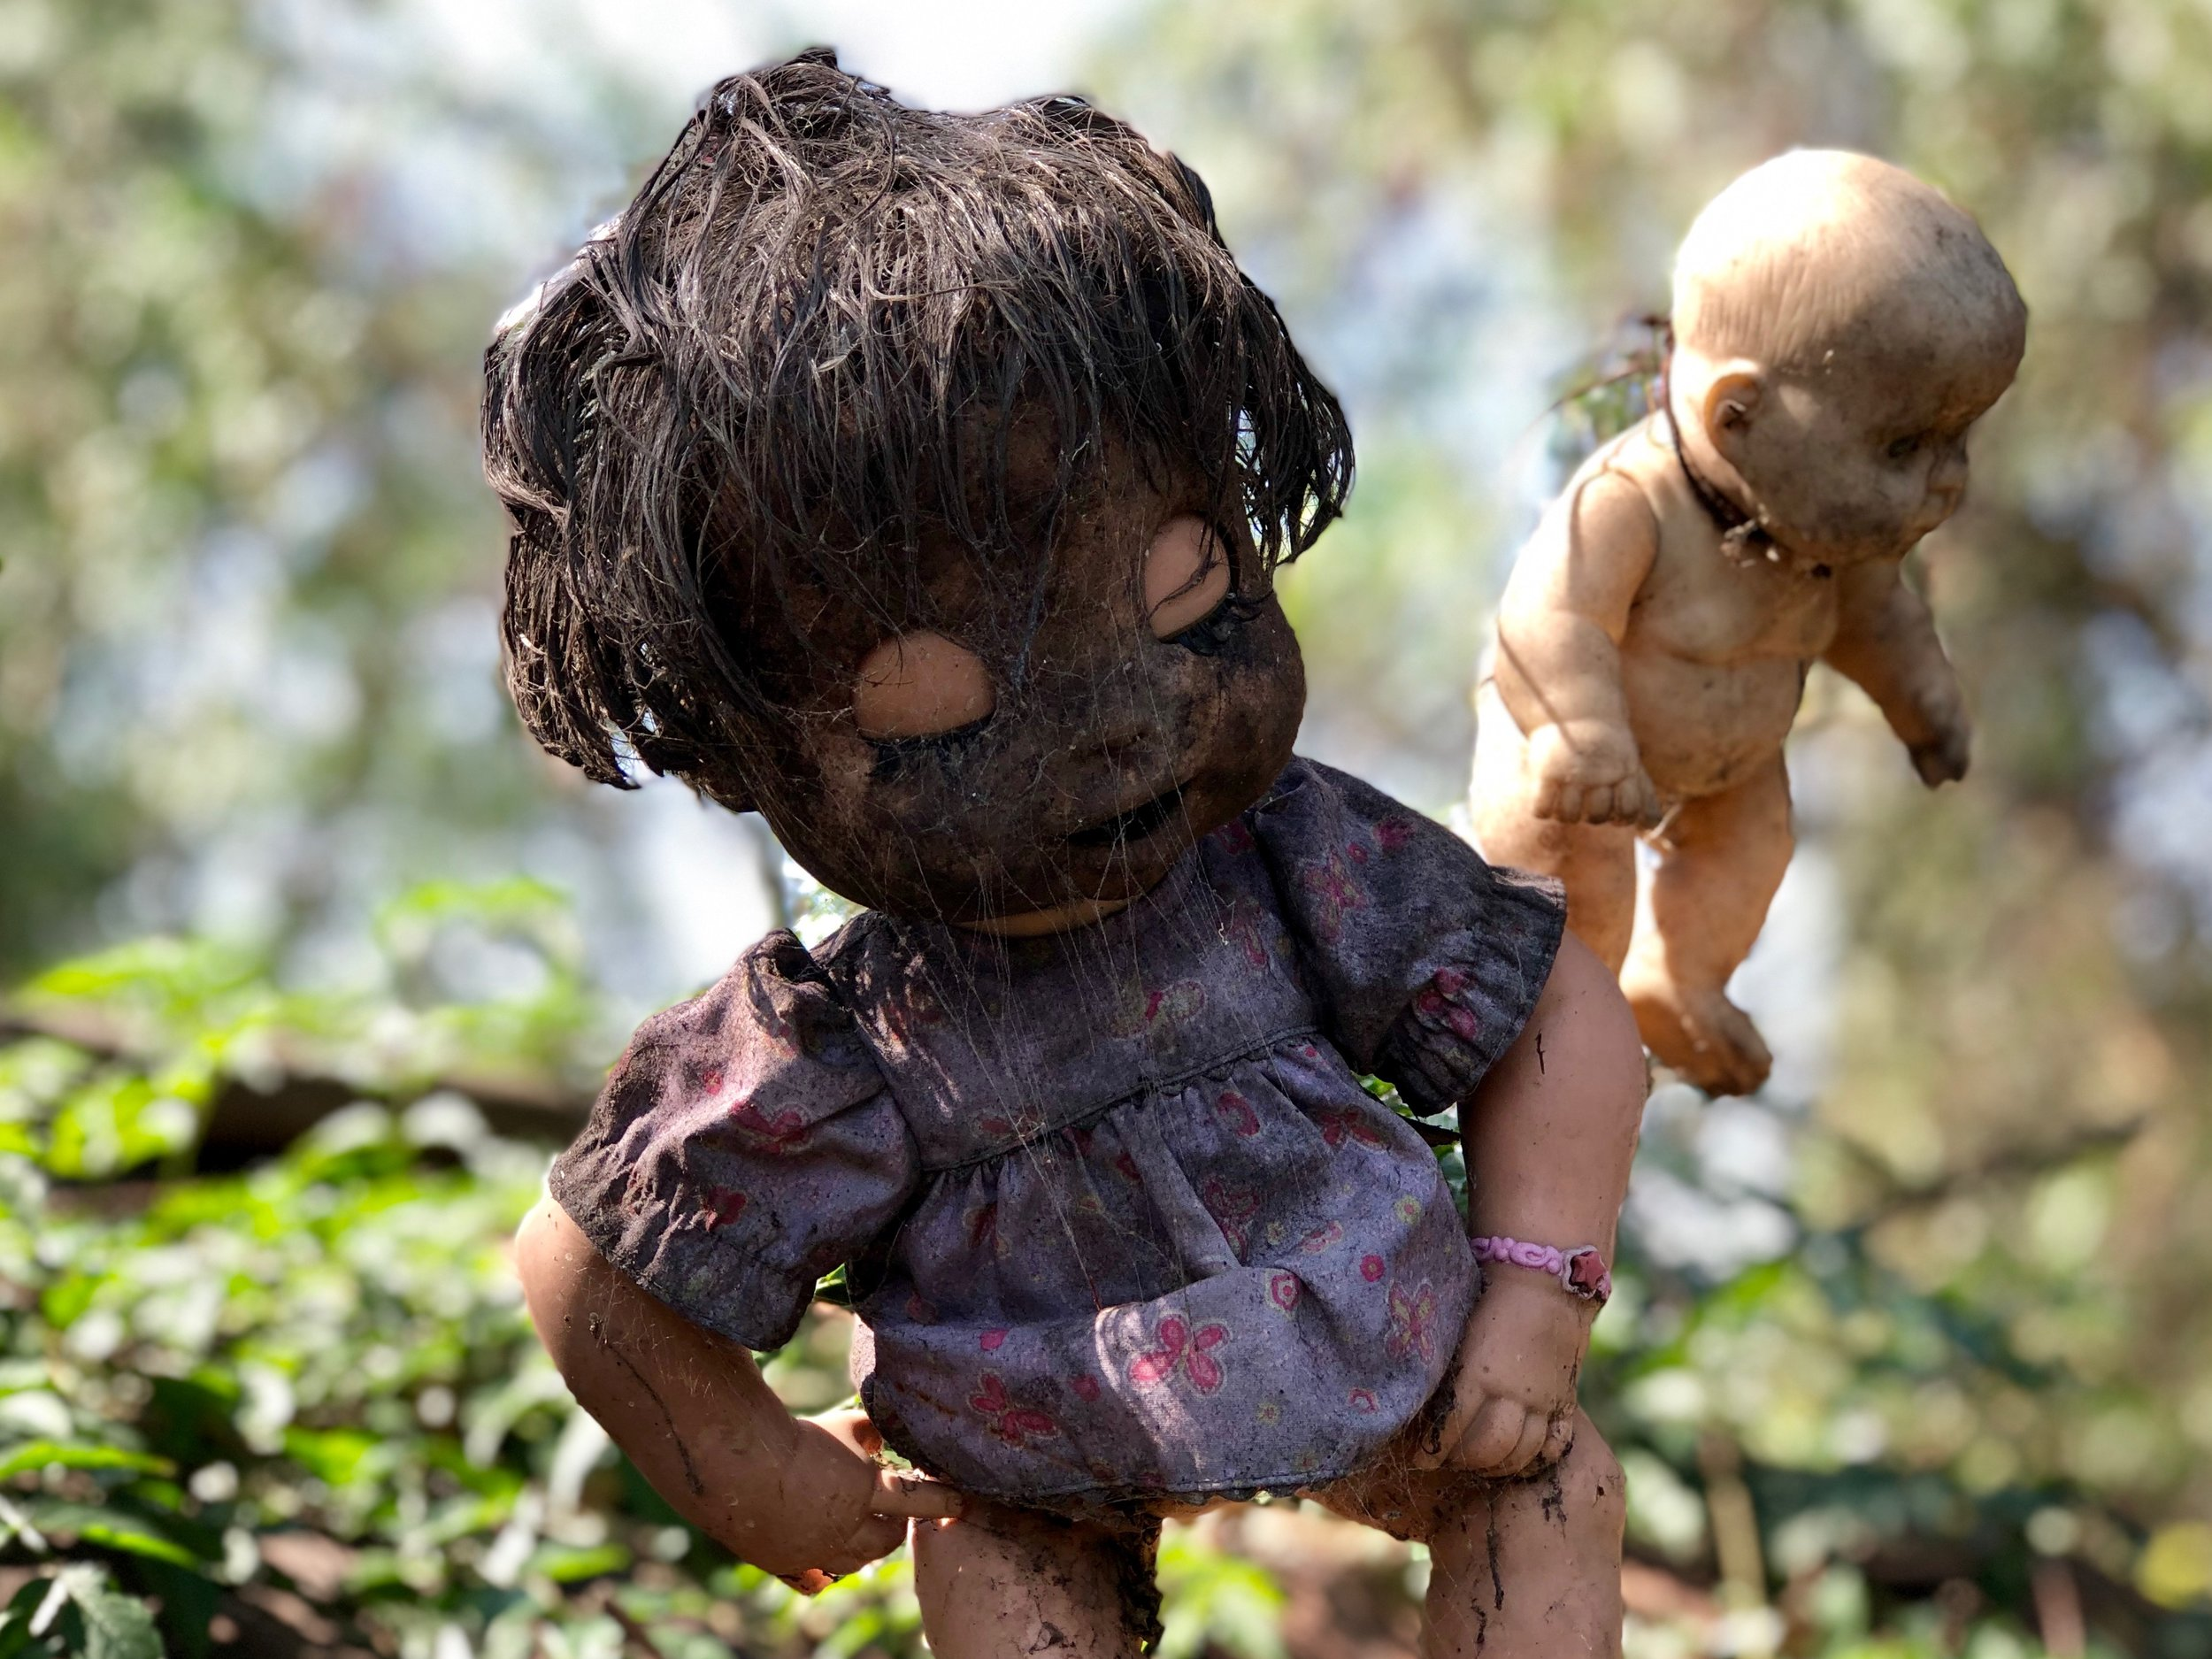 Disgustingly dirty dolls dangle from branches and wires all over the small isle